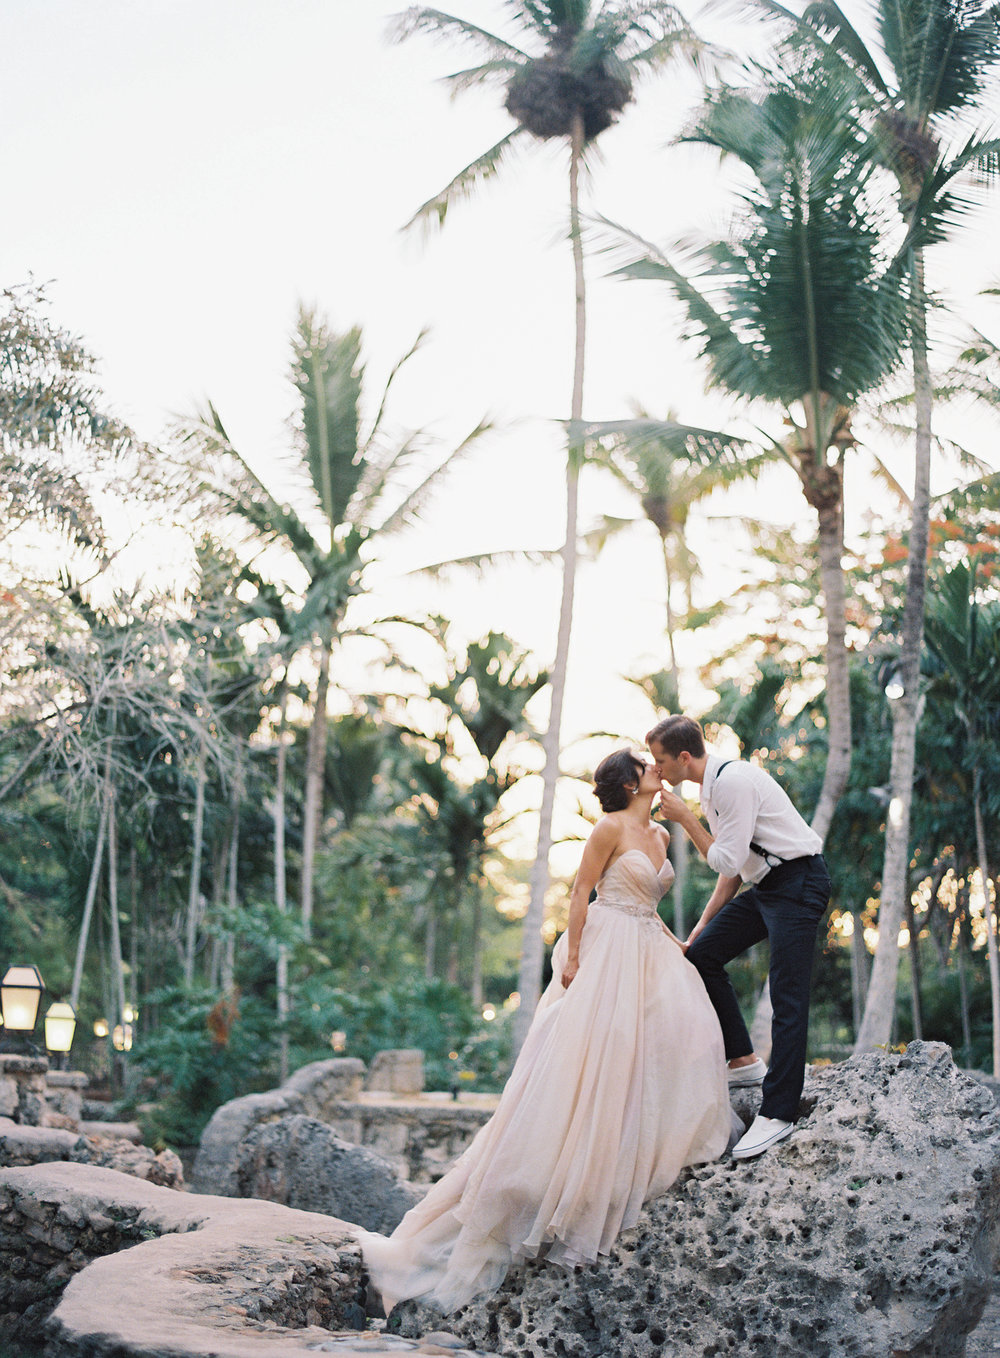 Dominican Republic Destination Wedding | Carrie King Photographer